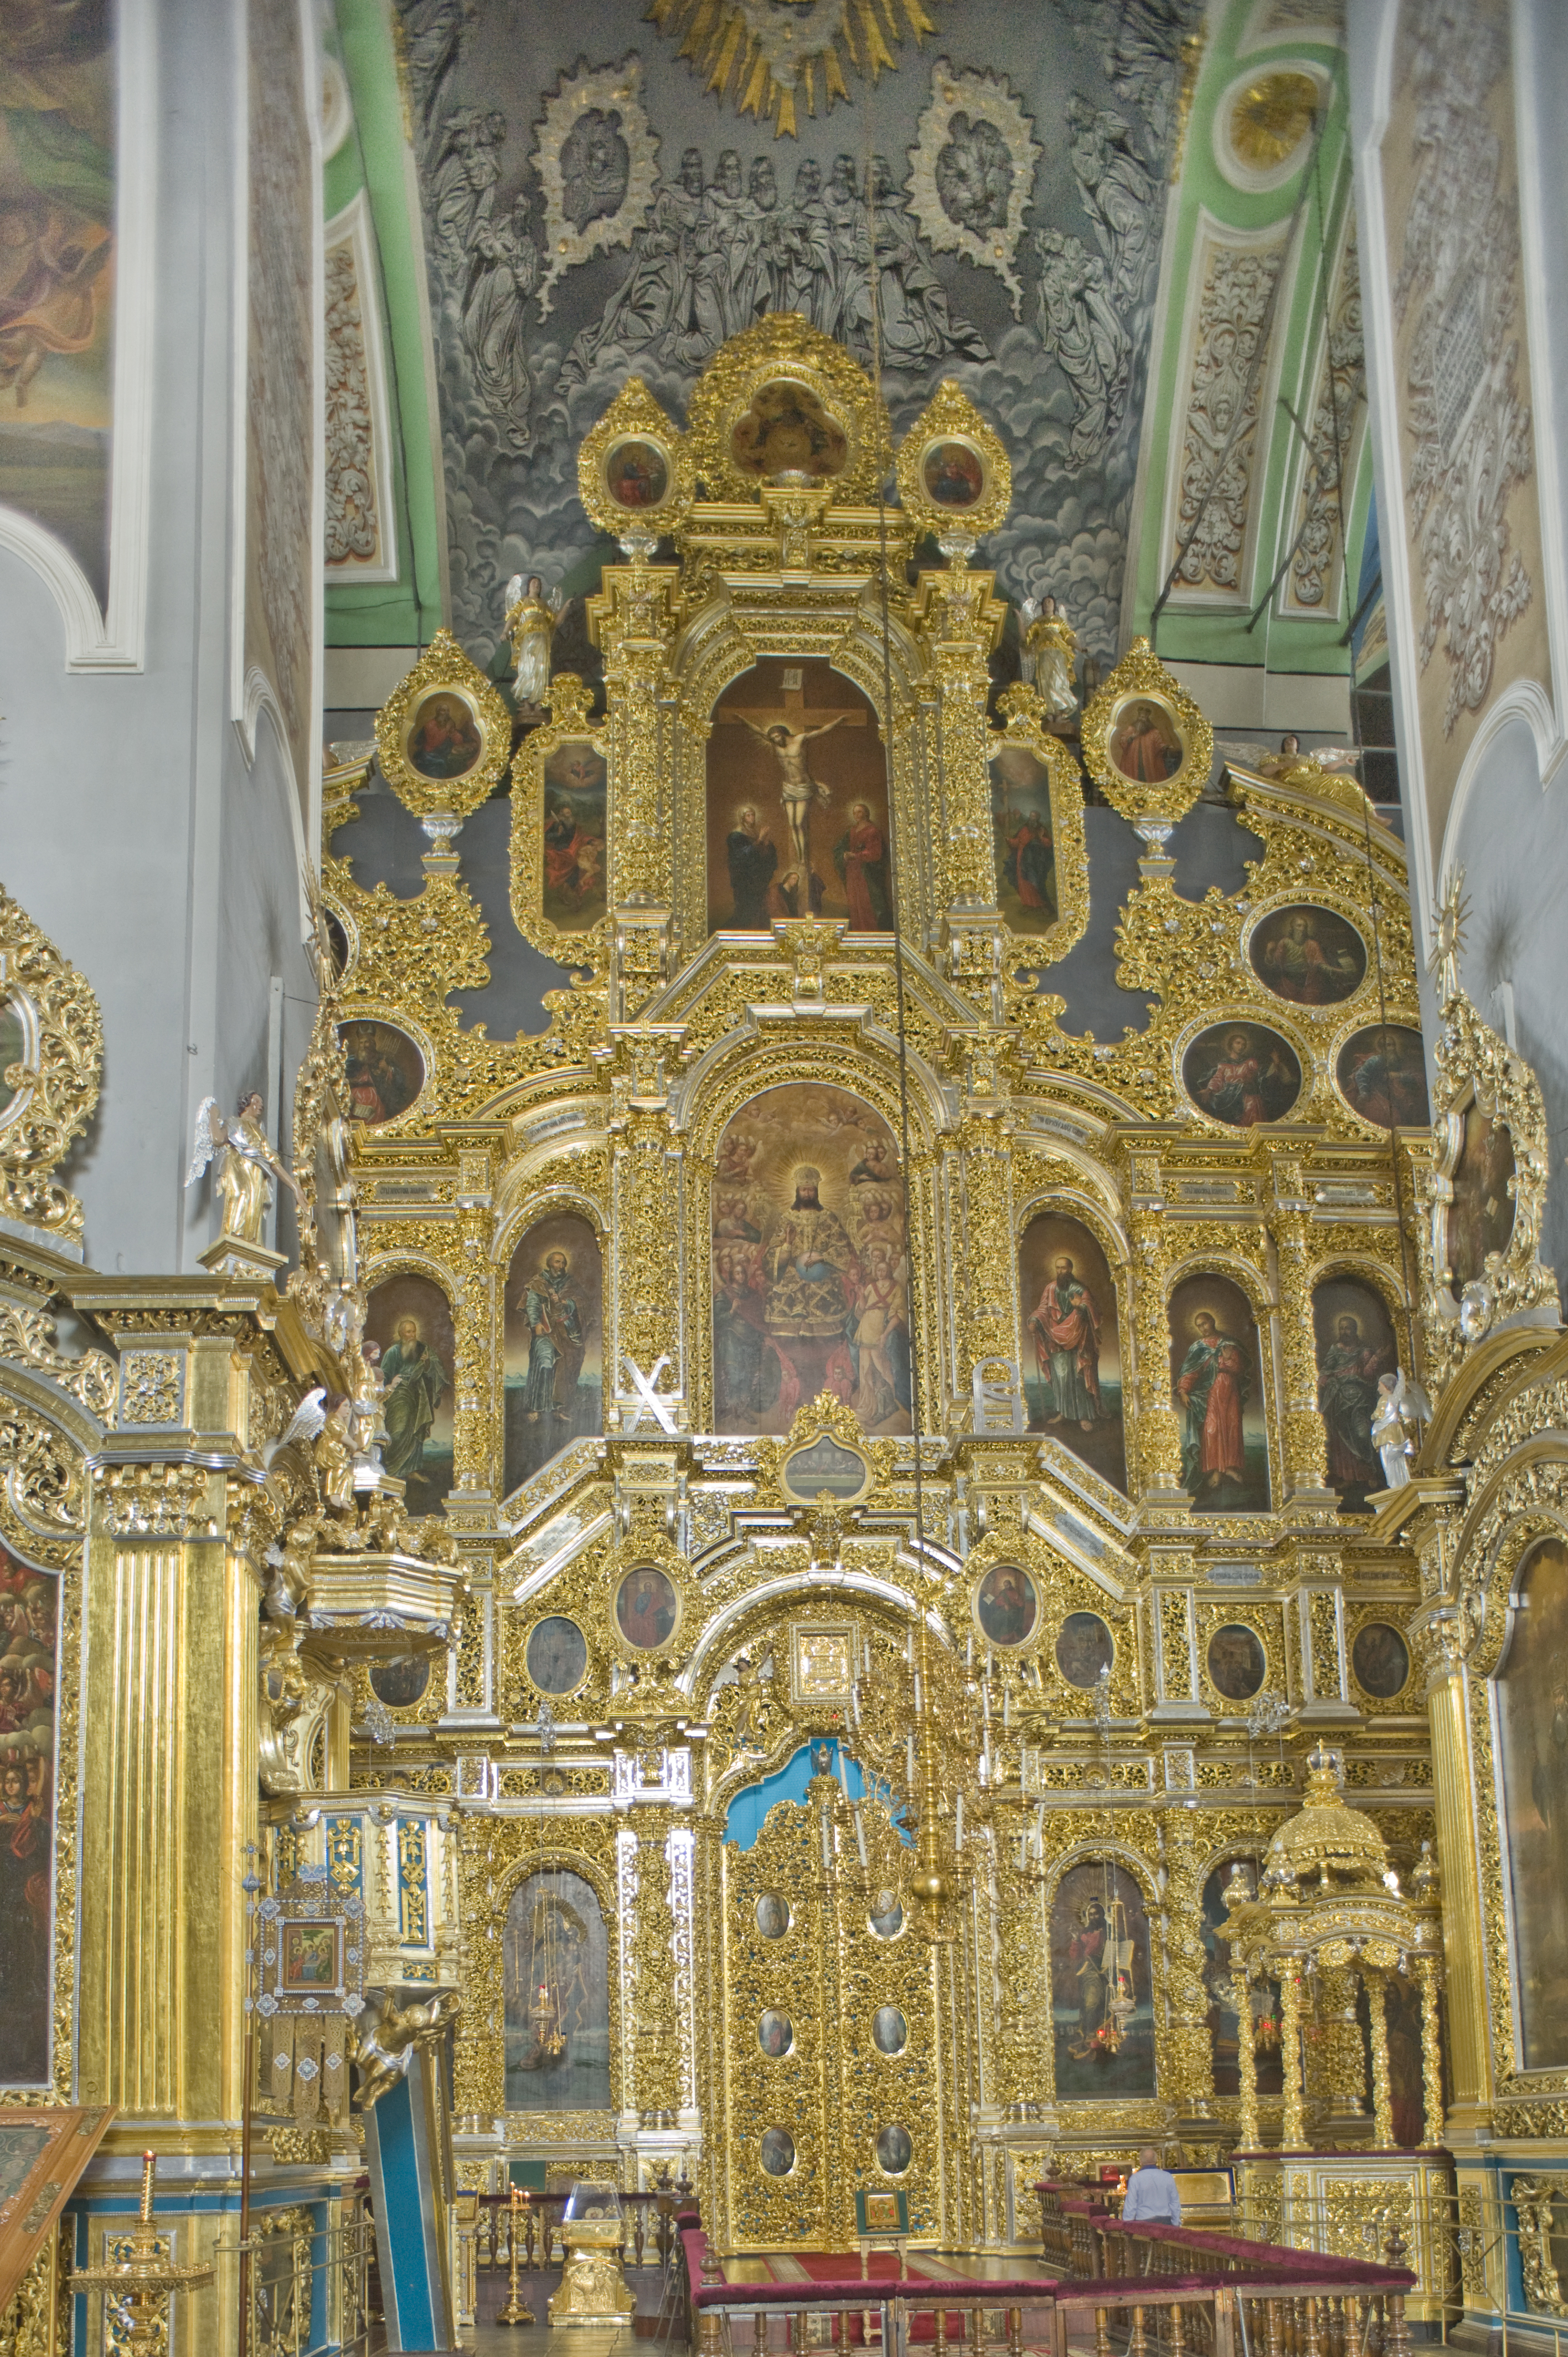 Dormition Cathedral, interior, view east toward icon screen. July 1, 2014. / Photo: William Brumfield